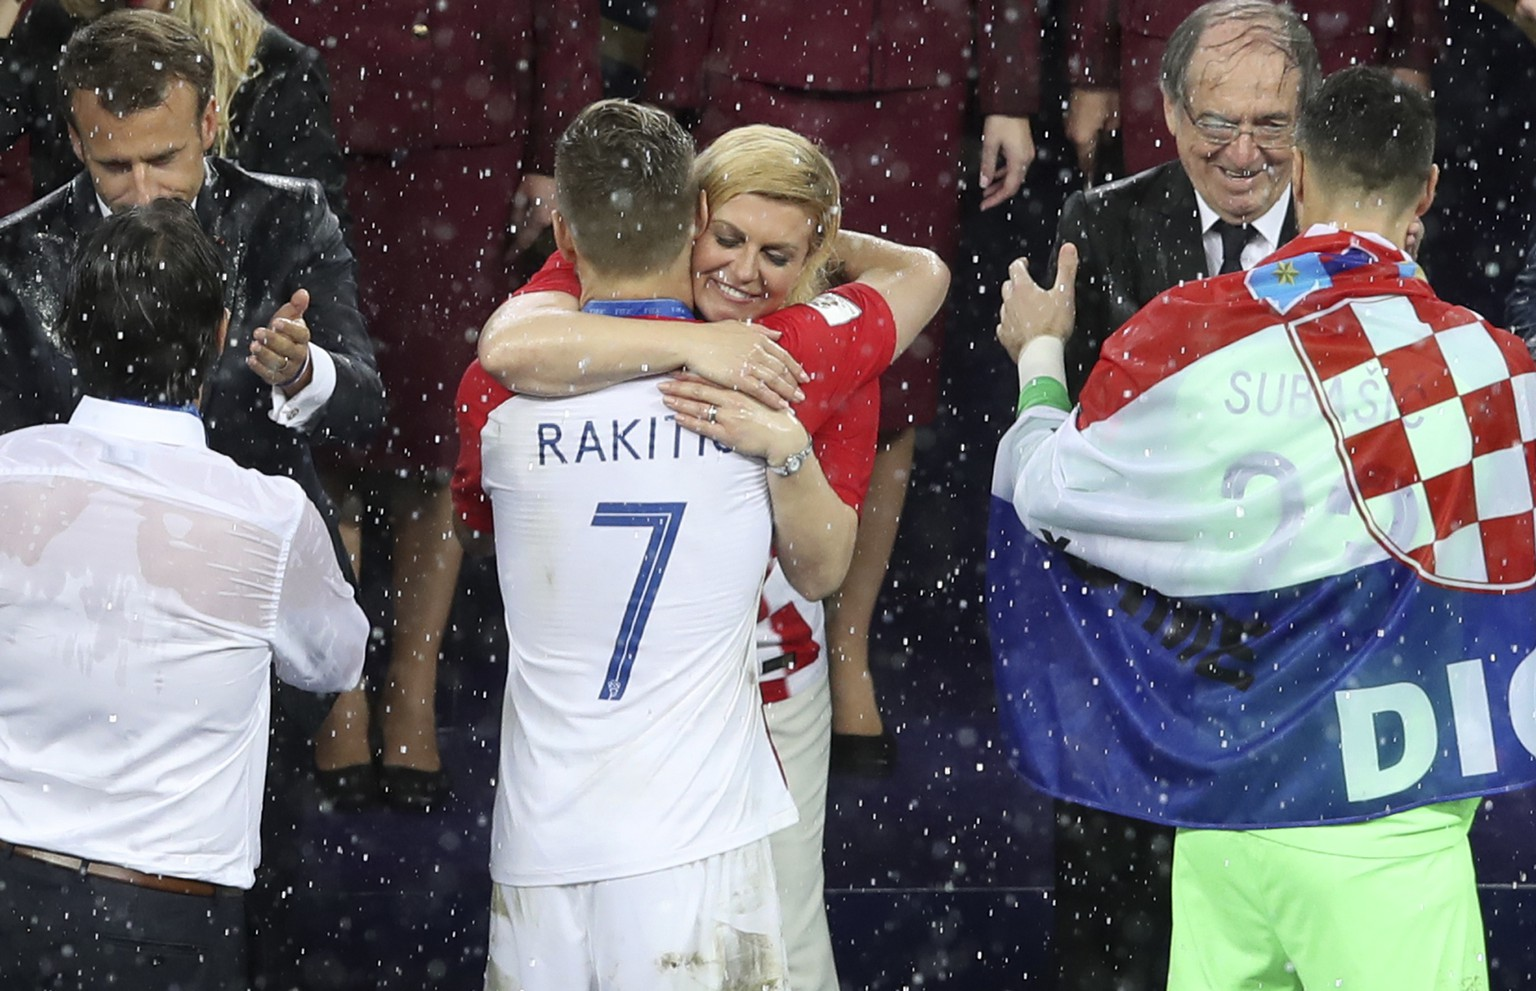 Croatian President Kalinda Grabar-Kitarovic hugs Croatia's Ivan Rakitic at the end of the final match between France and Croatia at the 2018 soccer World Cup in the Luzhniki Stadium in Moscow, Russia, Sunday, July 15, 2018. (AP Photo/Thanassis Stavrakis)